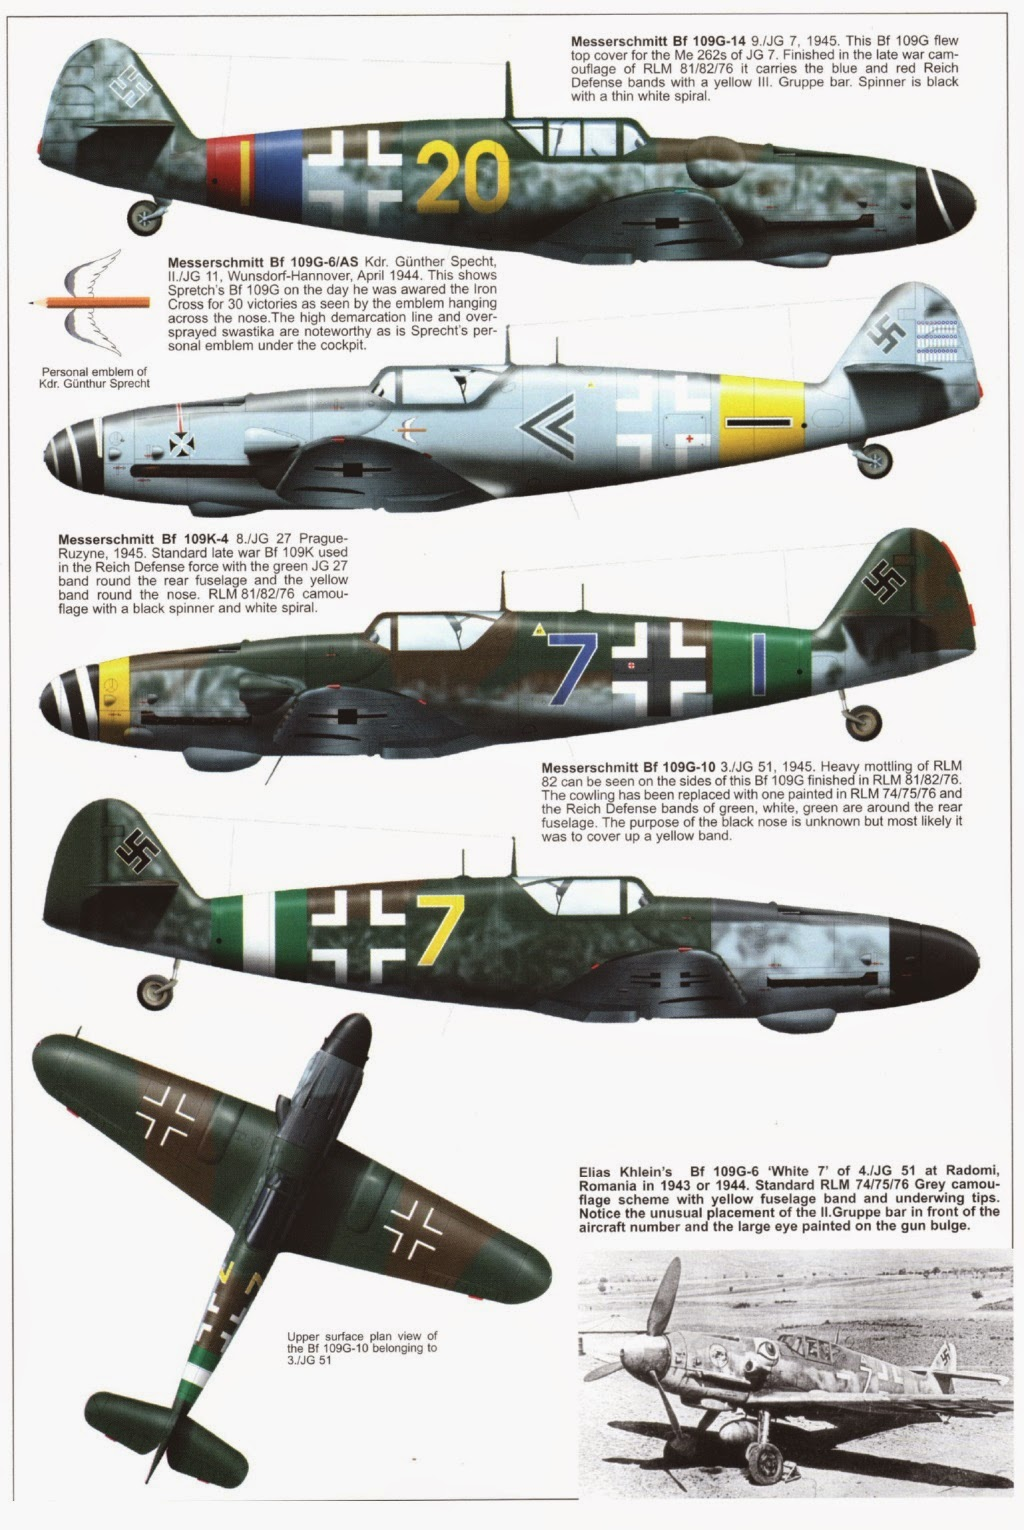 German Aircraft of WWII: Messerschmitt Bf 109 Part III